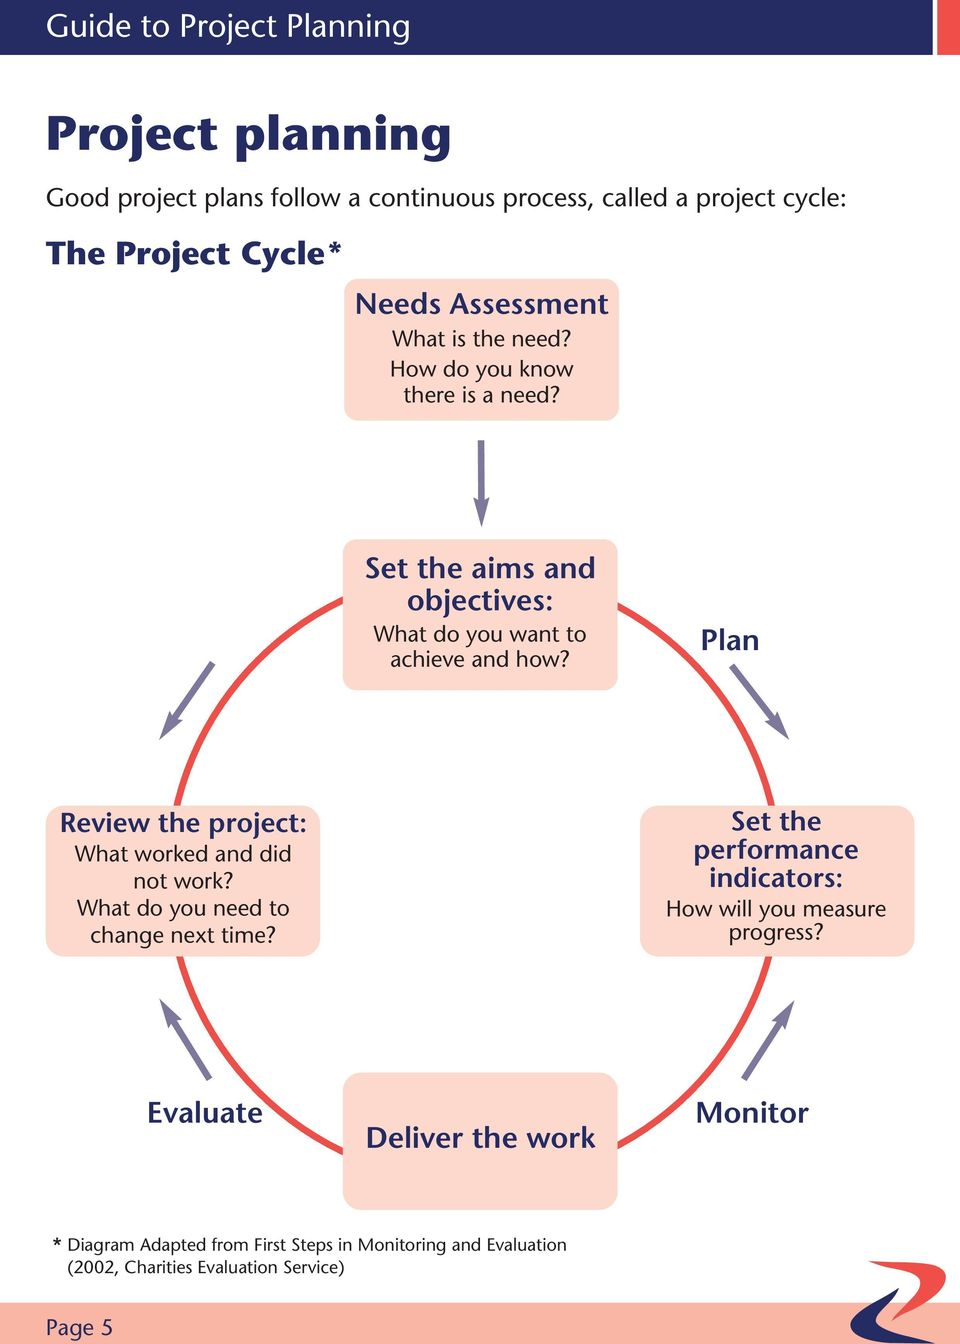 Plan Review the project: What worked and did not work? What do you need to change next time?